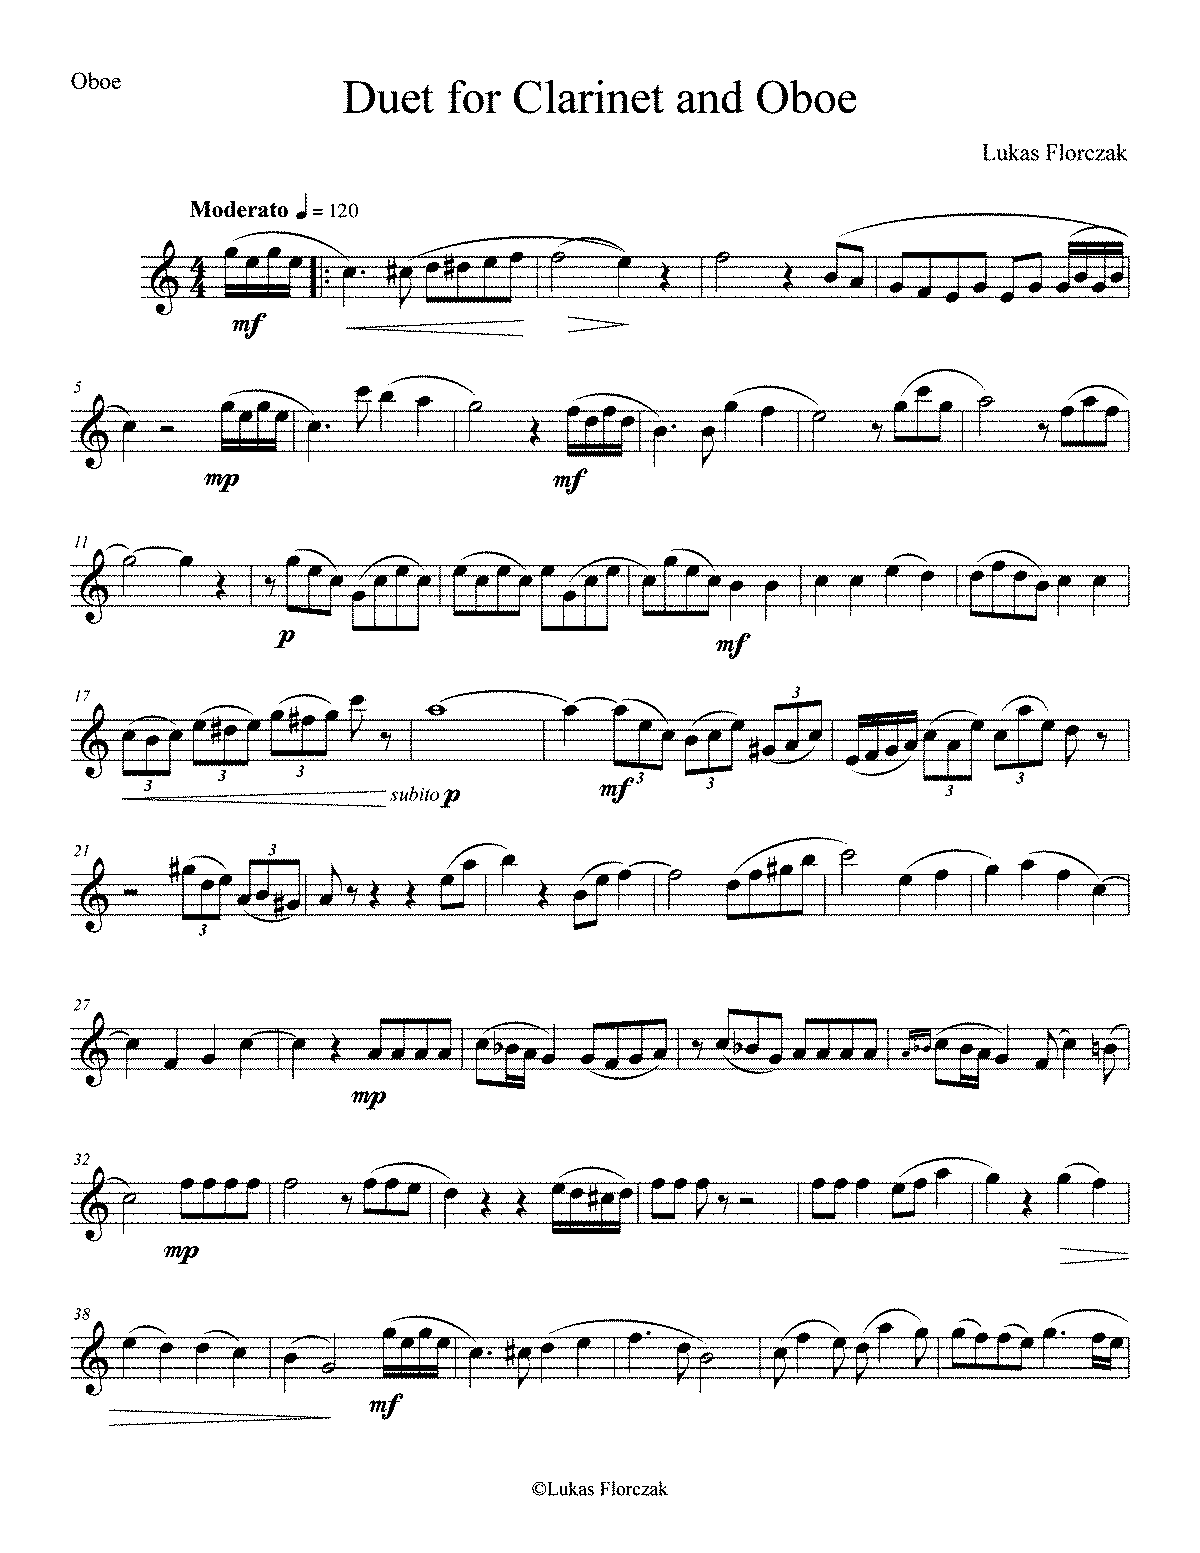 PMLP429847-Duet for Clarinet and Oboe - Oboe.pdf